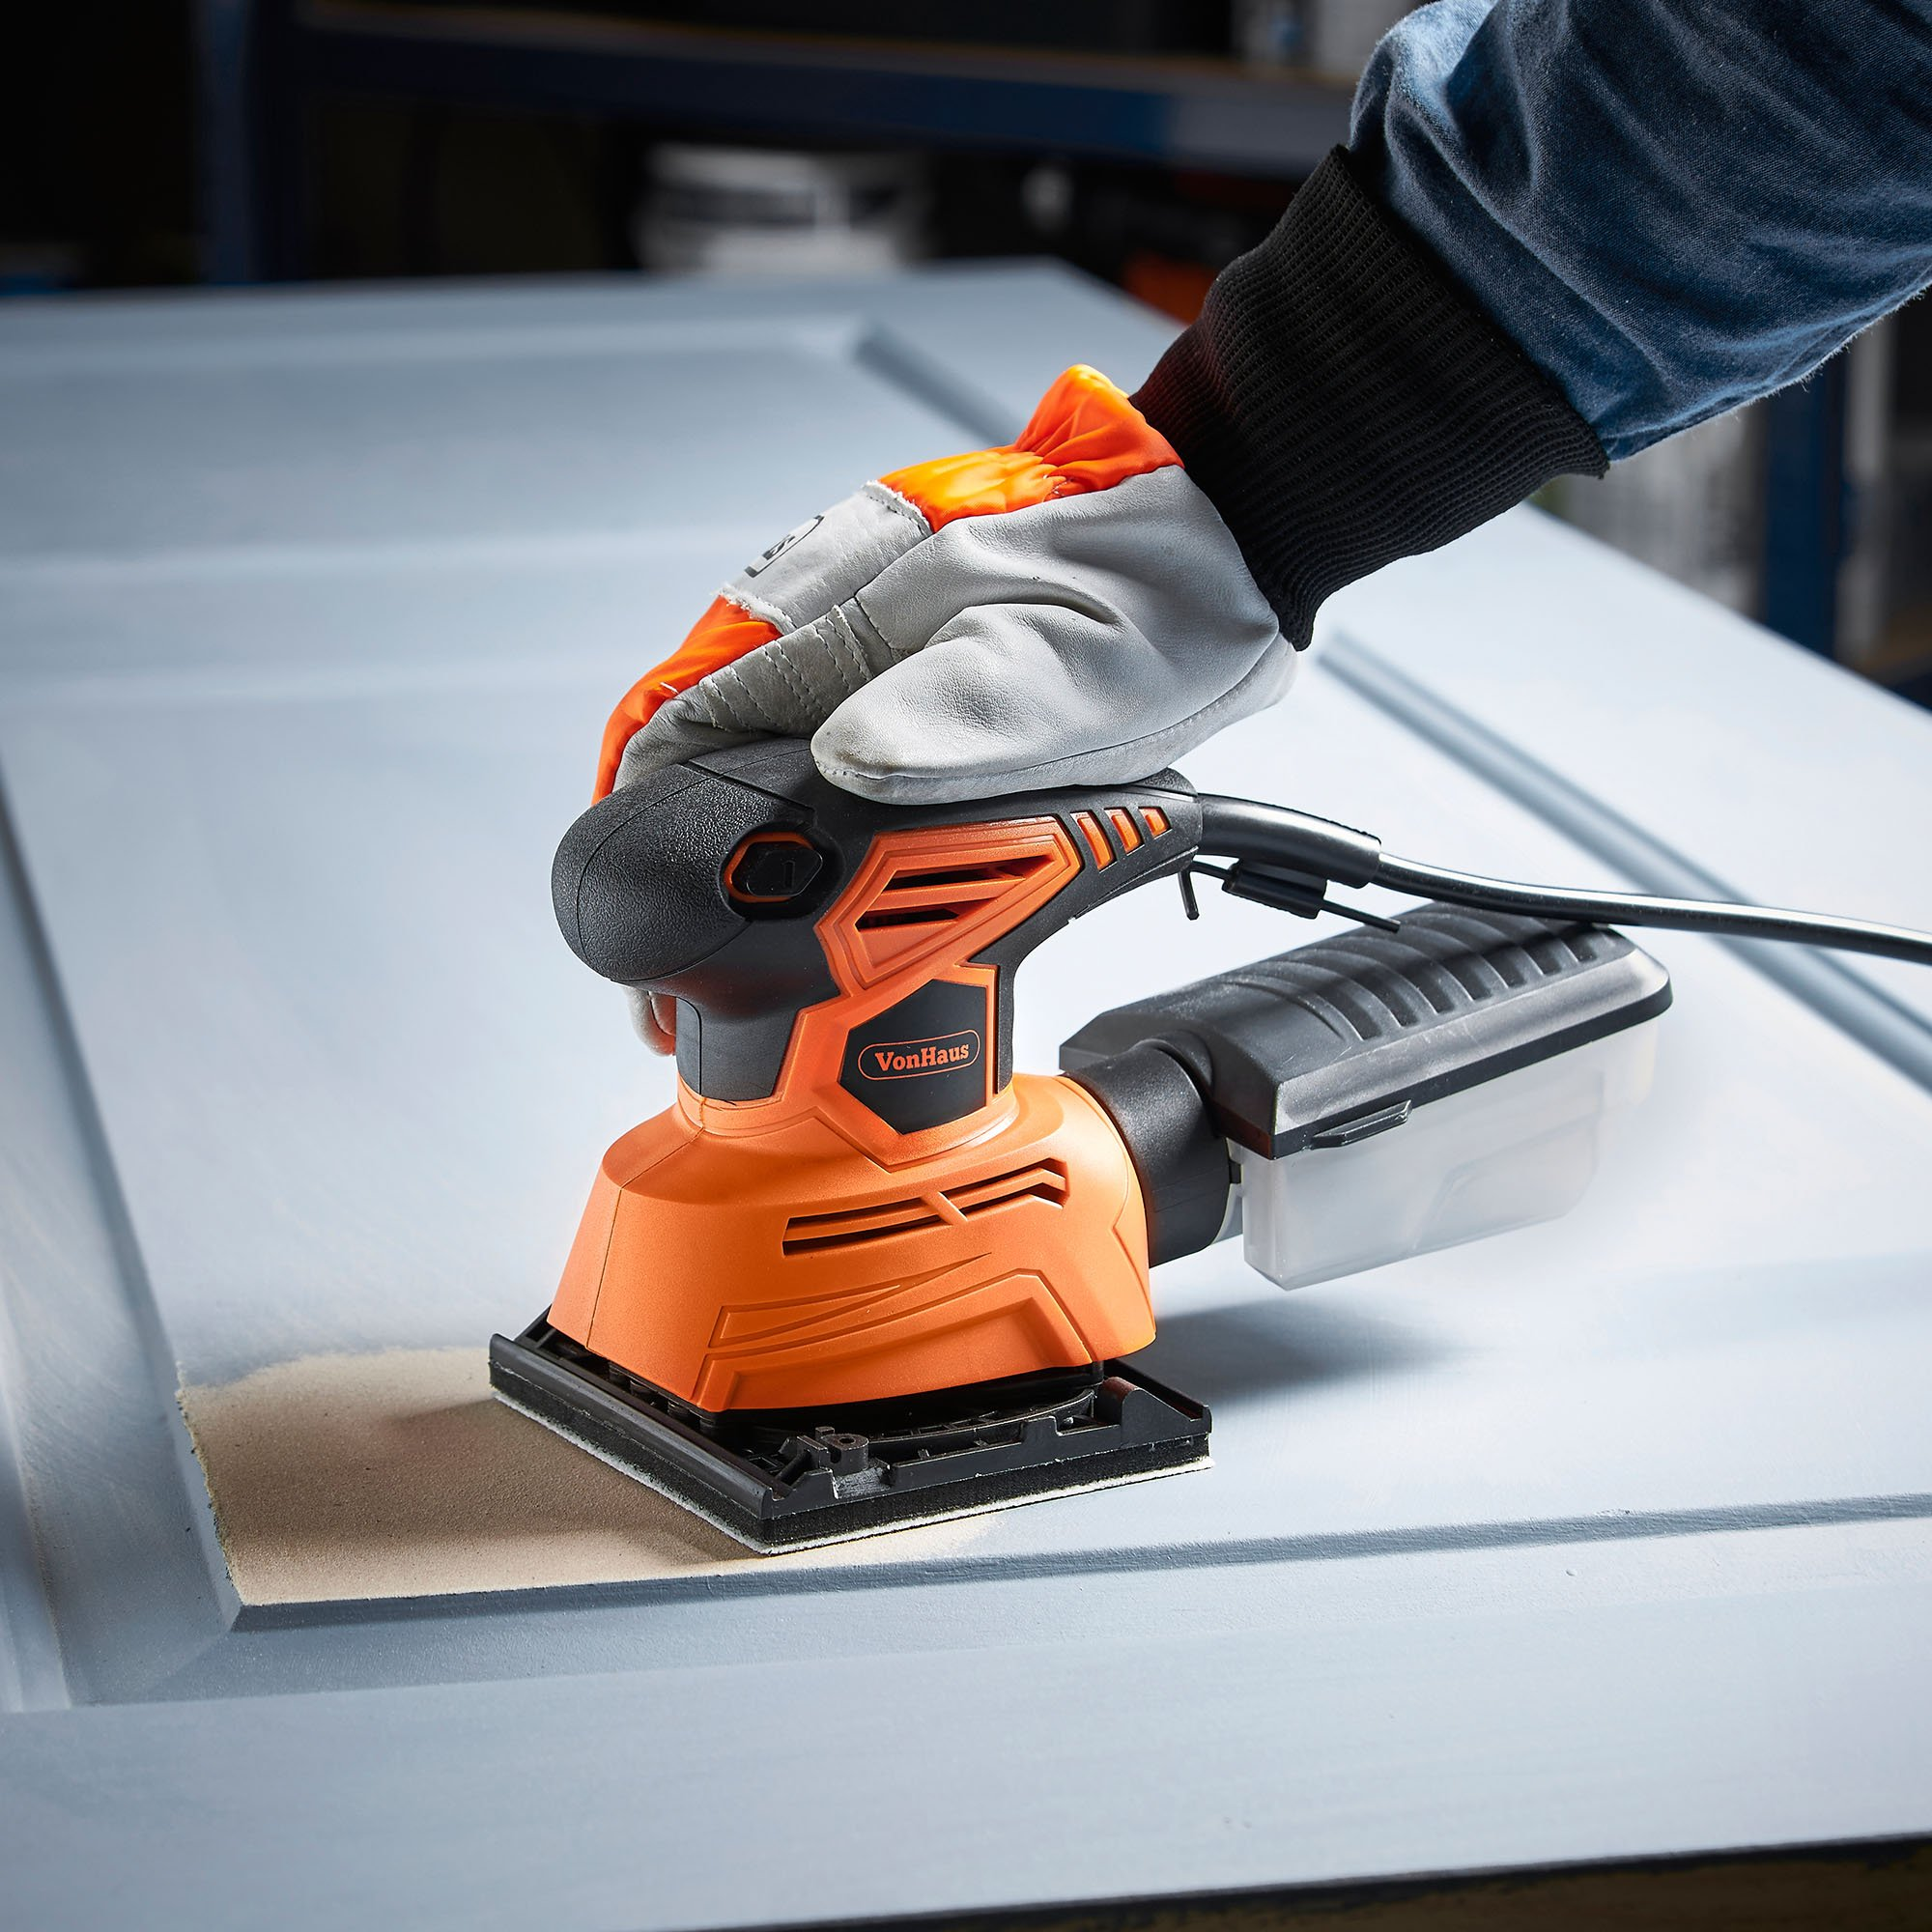 VonHaus 1.1A 2 in 1 Sheet & Detail Sander - 14000 RPM with 6 Sanding Sheets Included - Multi-Use, Compact Lightweight Design with Dust Extraction System and 6ft Power Cord by VonHaus (Image #3)